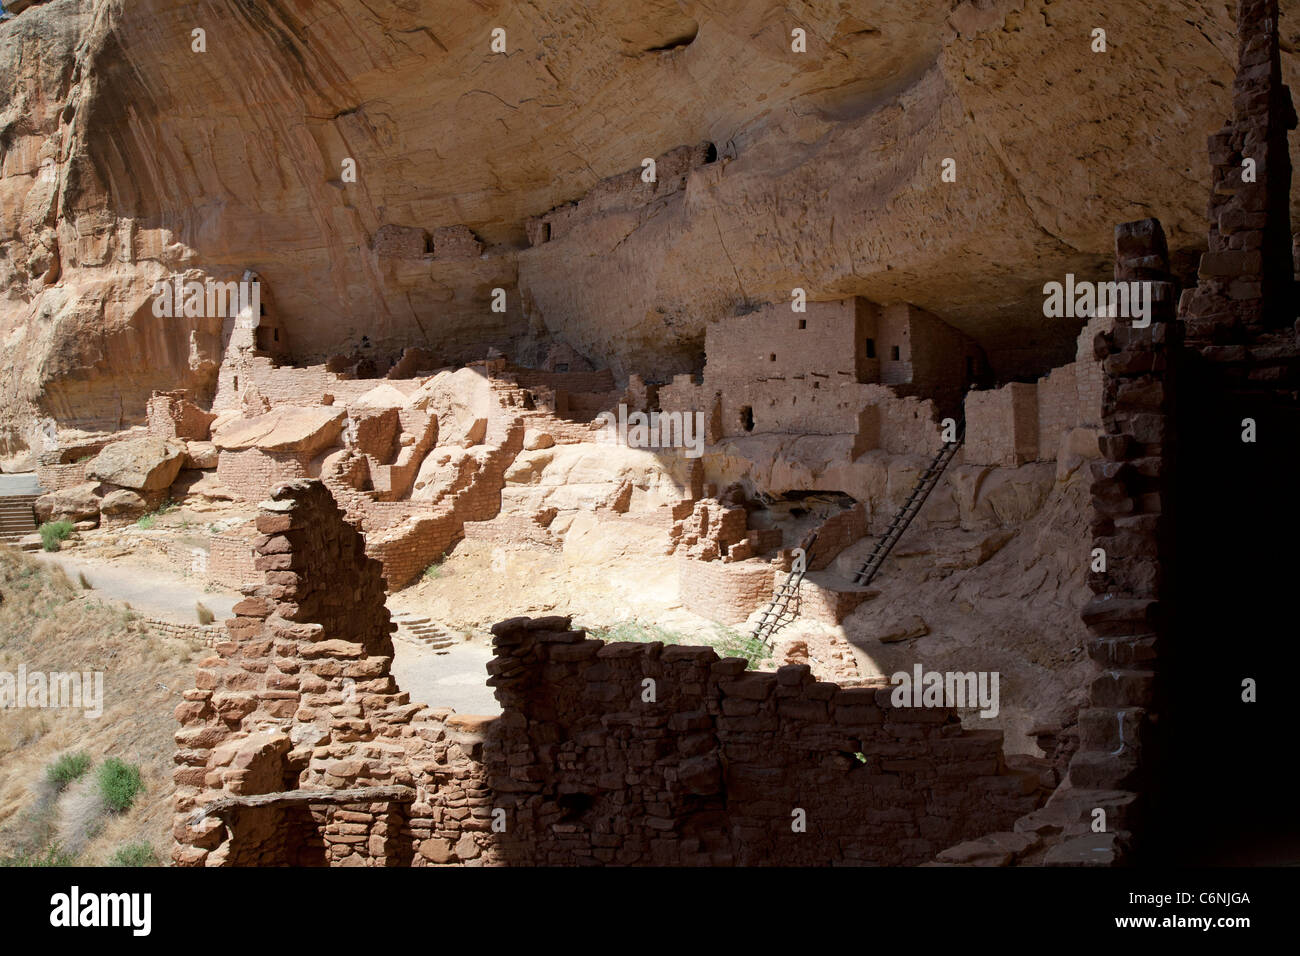 The Long House cliff dwelling at Mesa Verde National Park - Stock Image